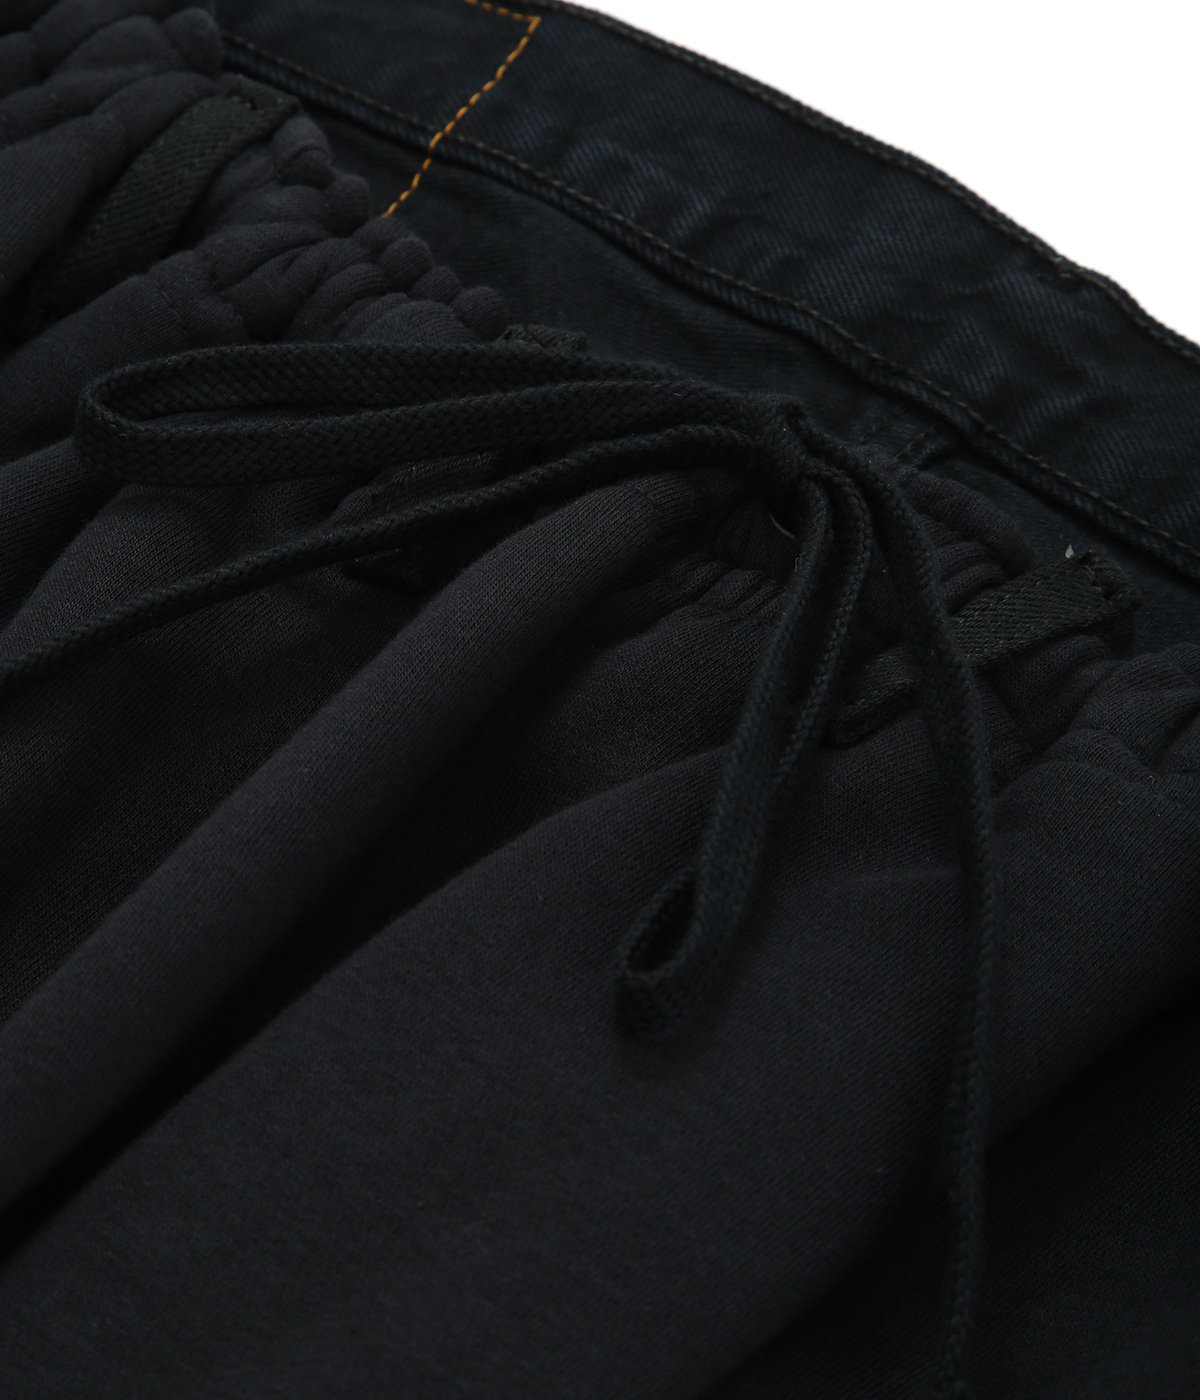 Over jogging jeans